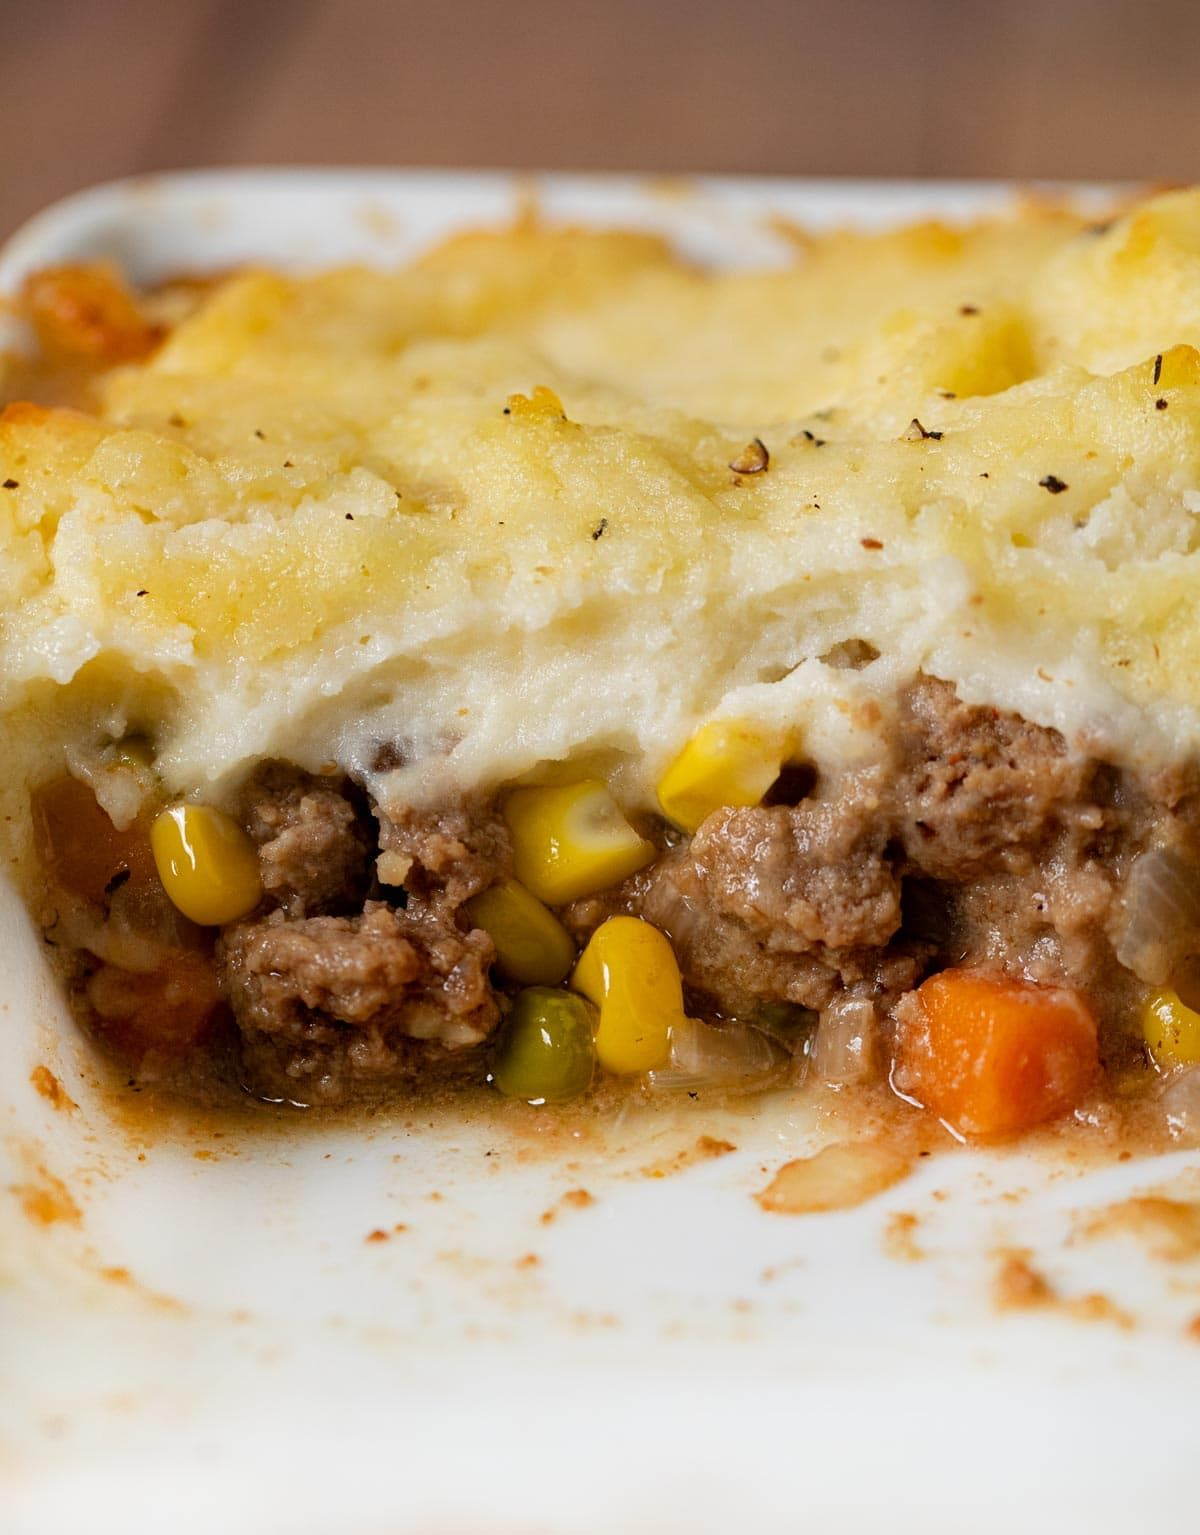 Beef Shepherd S Pie Is A Traditional Dish With Ground Beef Veggies And A Creamy Mashed Potato Topping Di In 2020 Shepherds Pie Beef Recipes Beef Recipes For Dinner